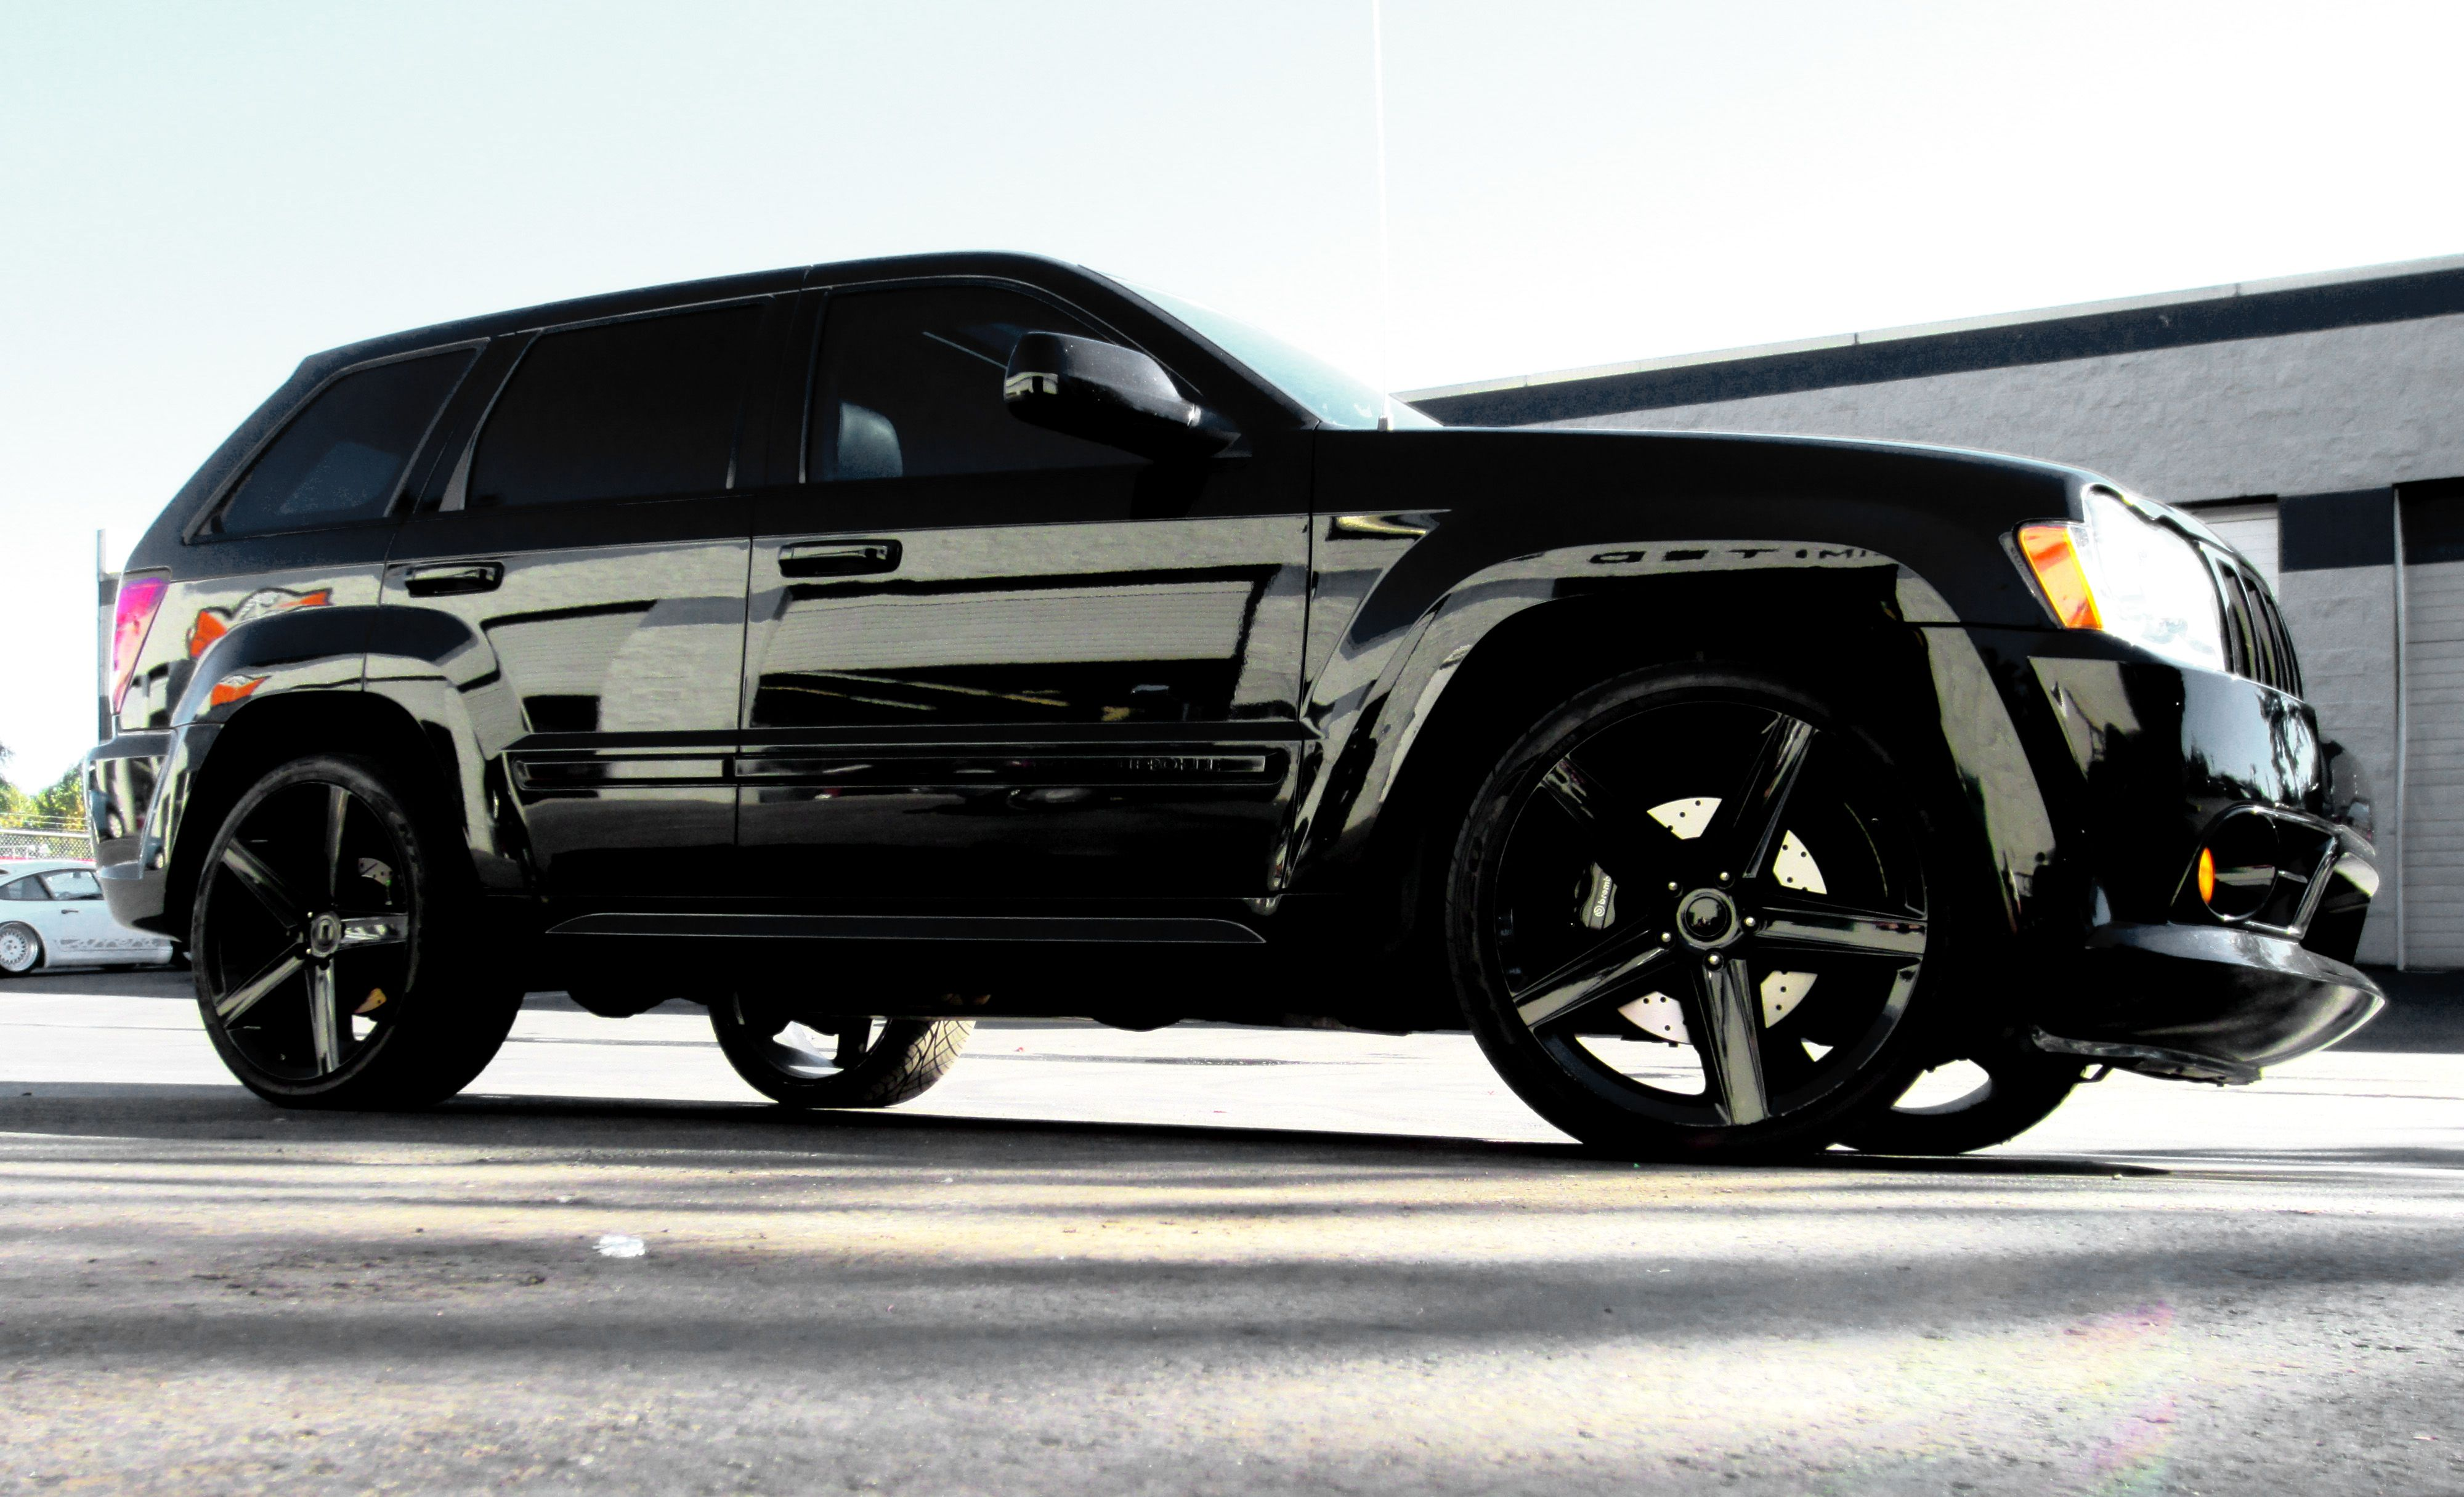 full chrome trim blackout on this jeep cherokee srt8 i. Black Bedroom Furniture Sets. Home Design Ideas